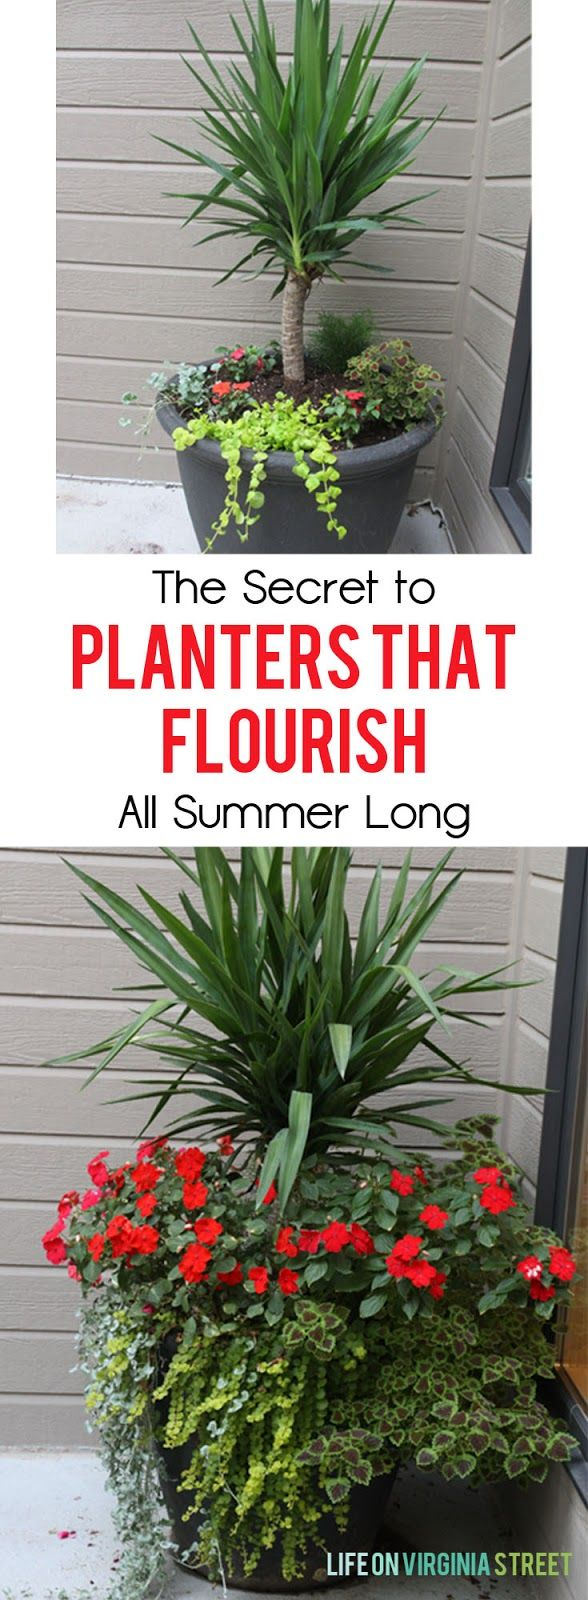 Definitely need to try this! The secret to planters that flourish all summer long.